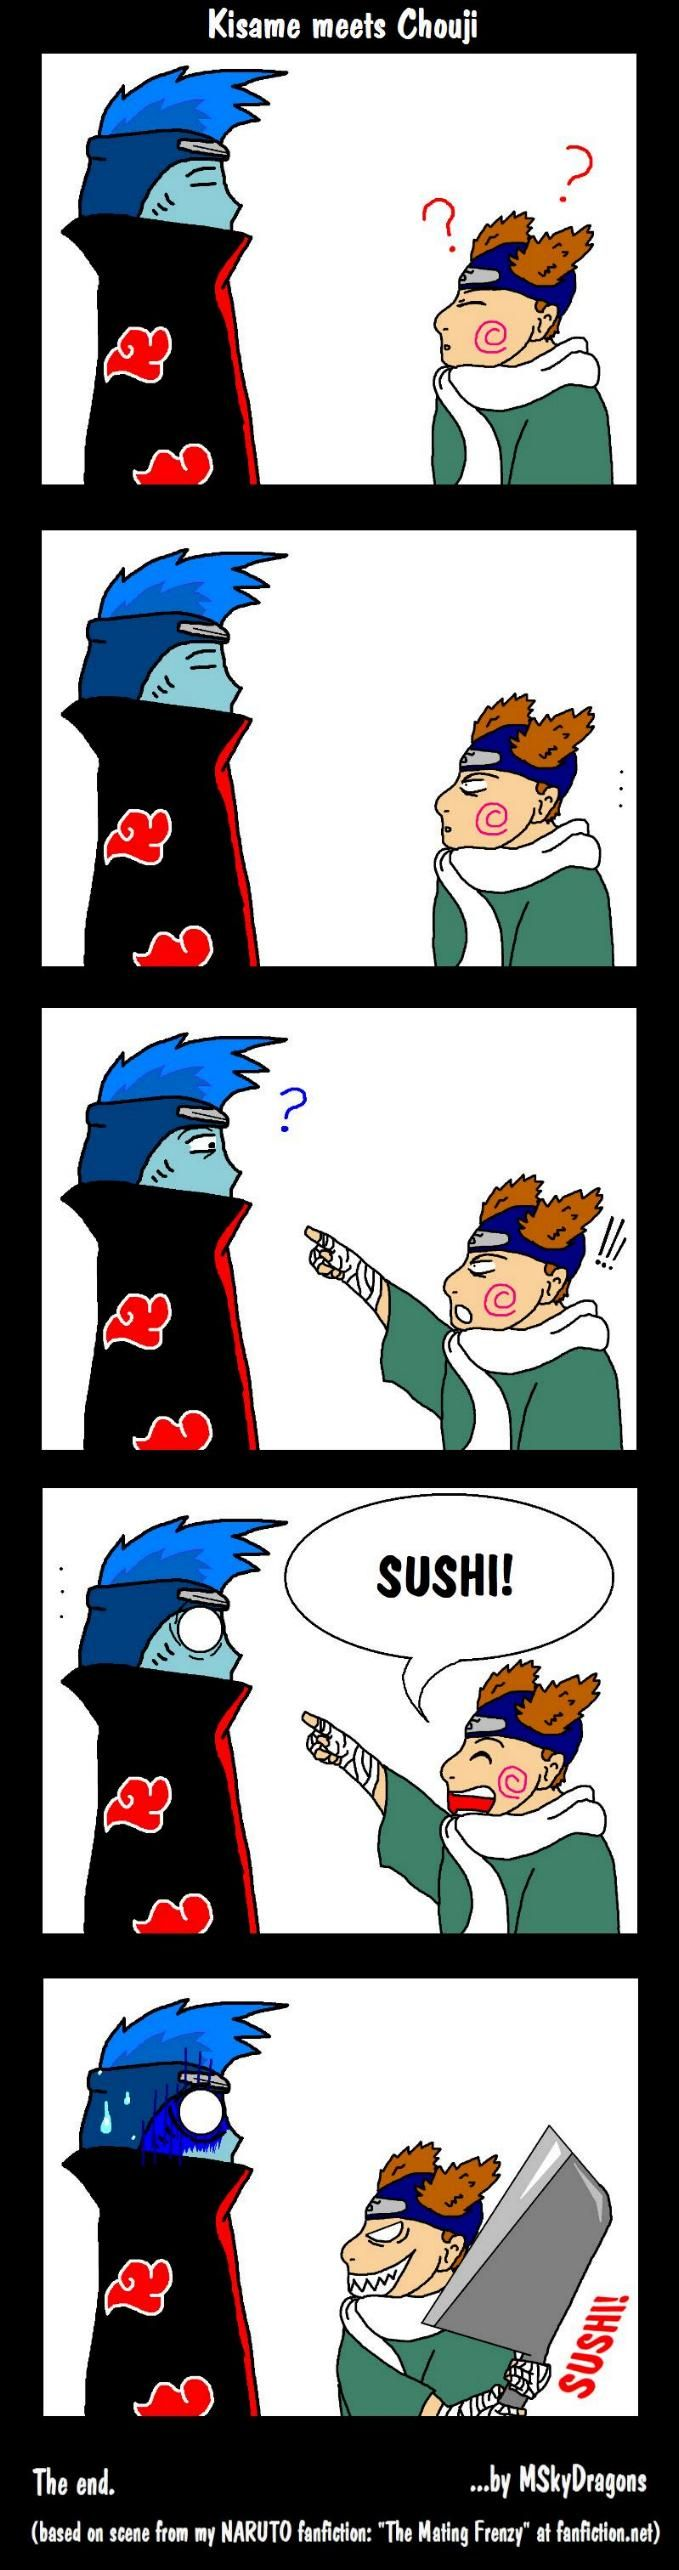 """Sounds fishy... Poor Kisame lost the """"who got the bigger knife""""-combat! <3"""